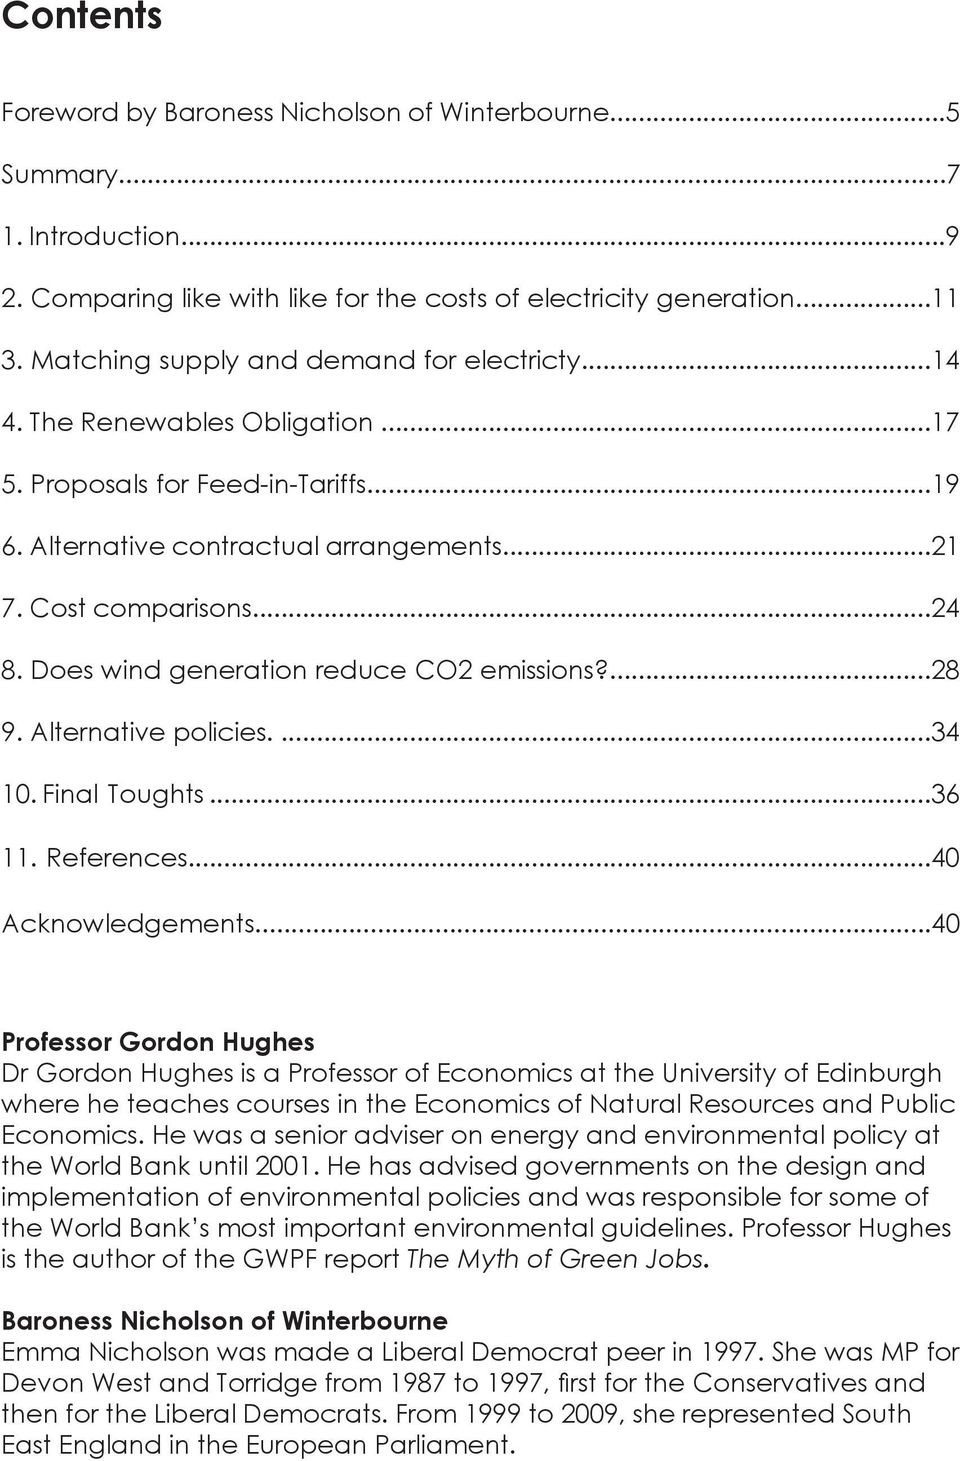 Does wind generation reduce CO2 emissions?...28 9. Alternative policies....34 10. Final Toughts...36 11. References...40 Acknowledgements.